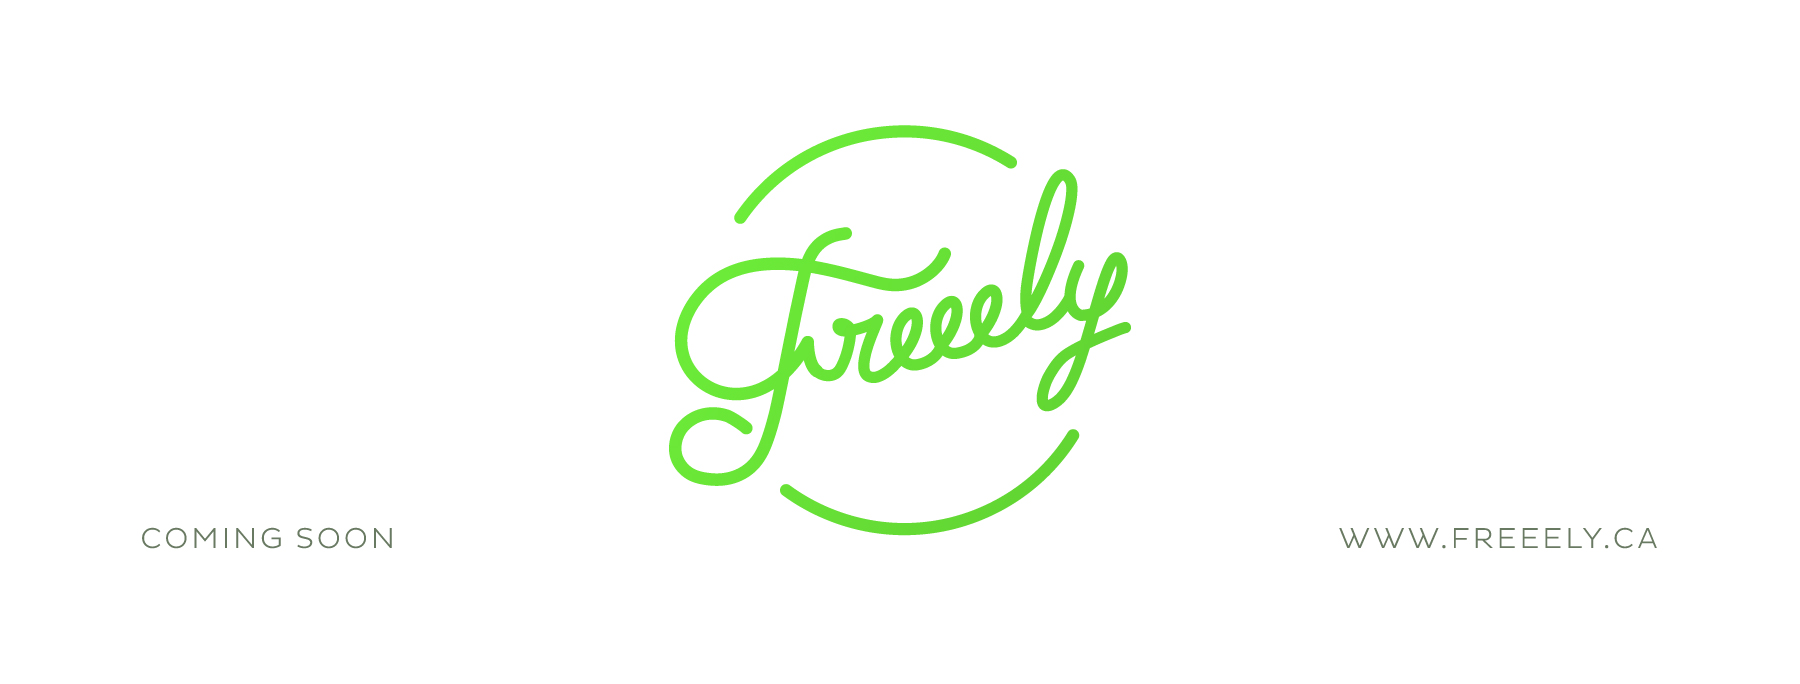 Freelance search site - FREEELY - Millimade